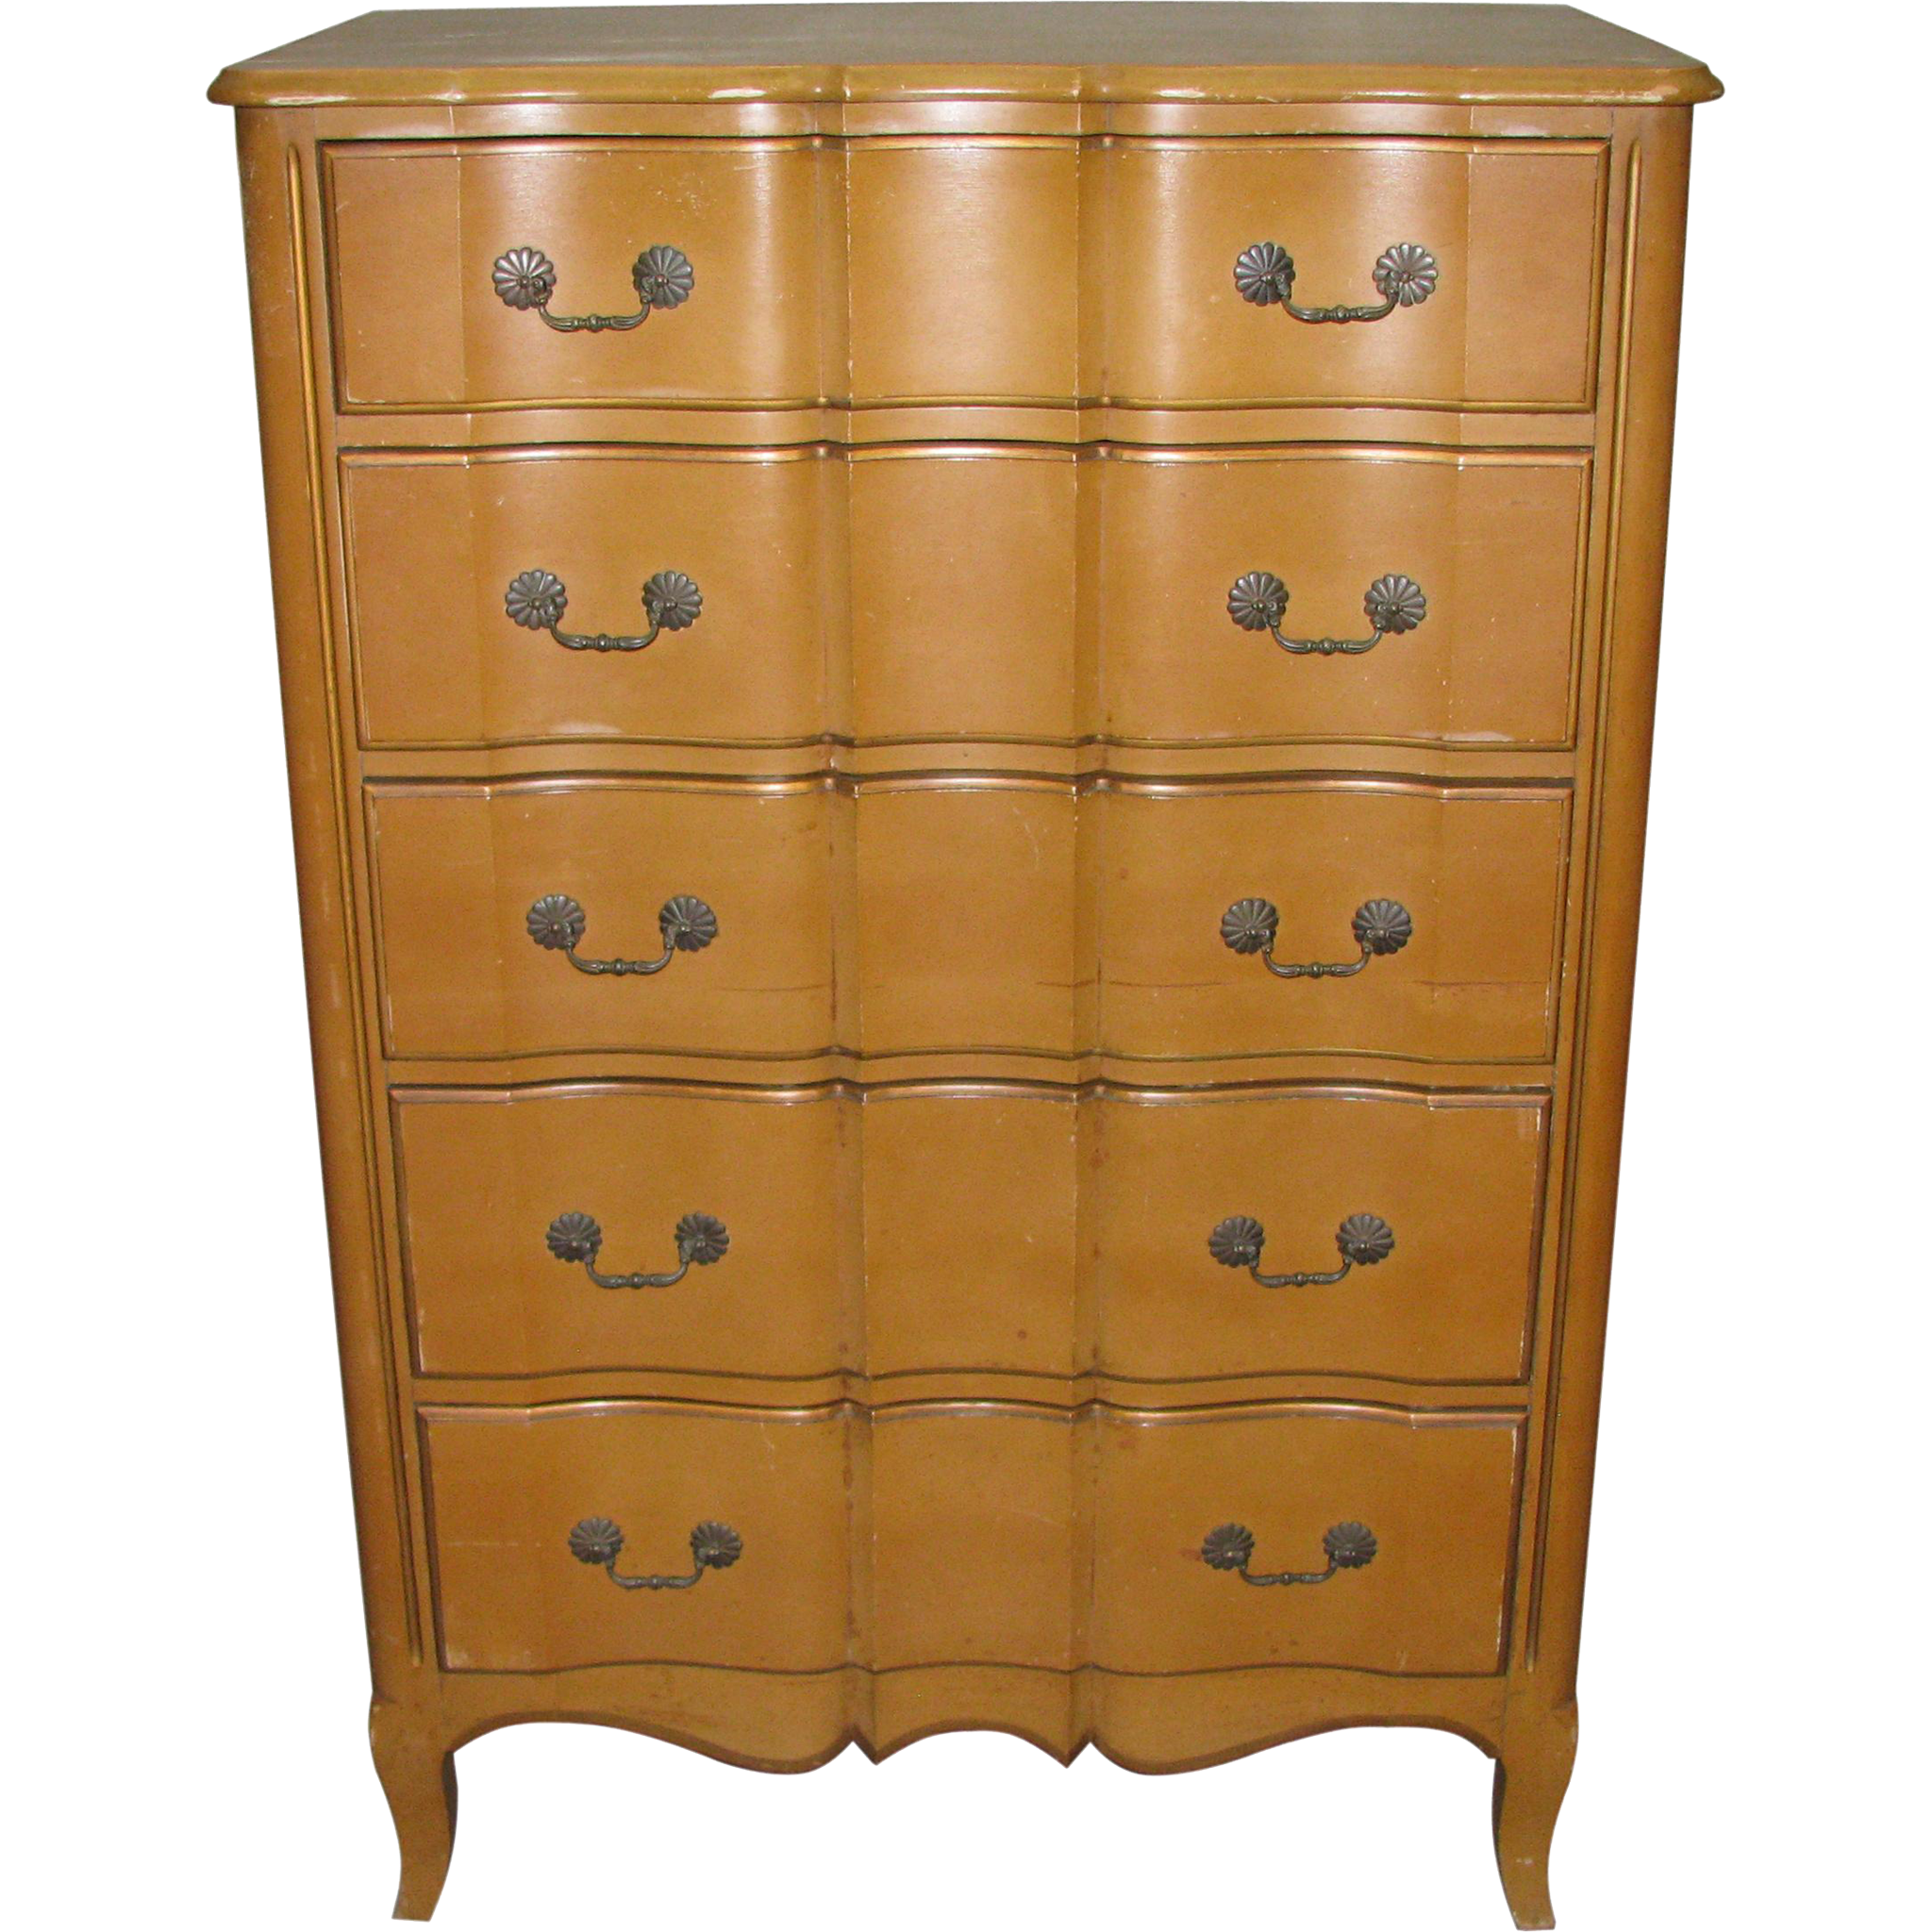 French provincial wooden dresser with warm finish